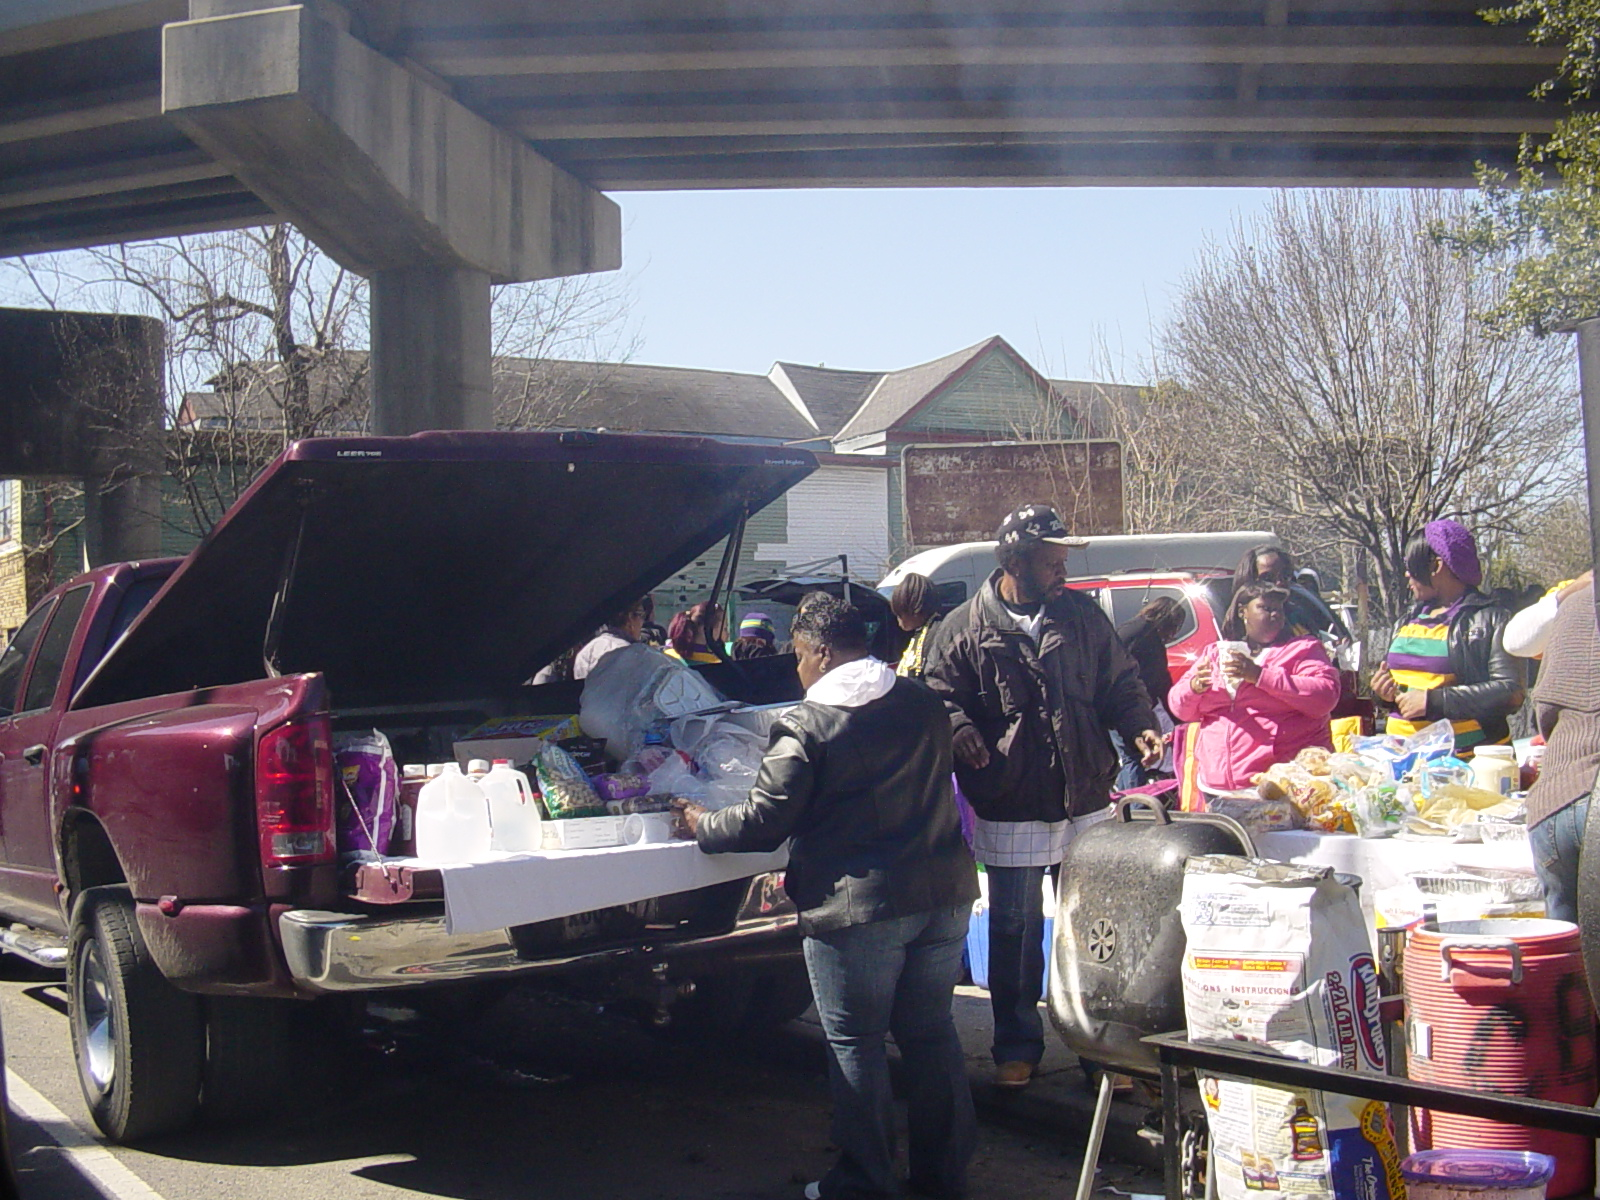 BBQing and other social activities under the Claiborne overpass